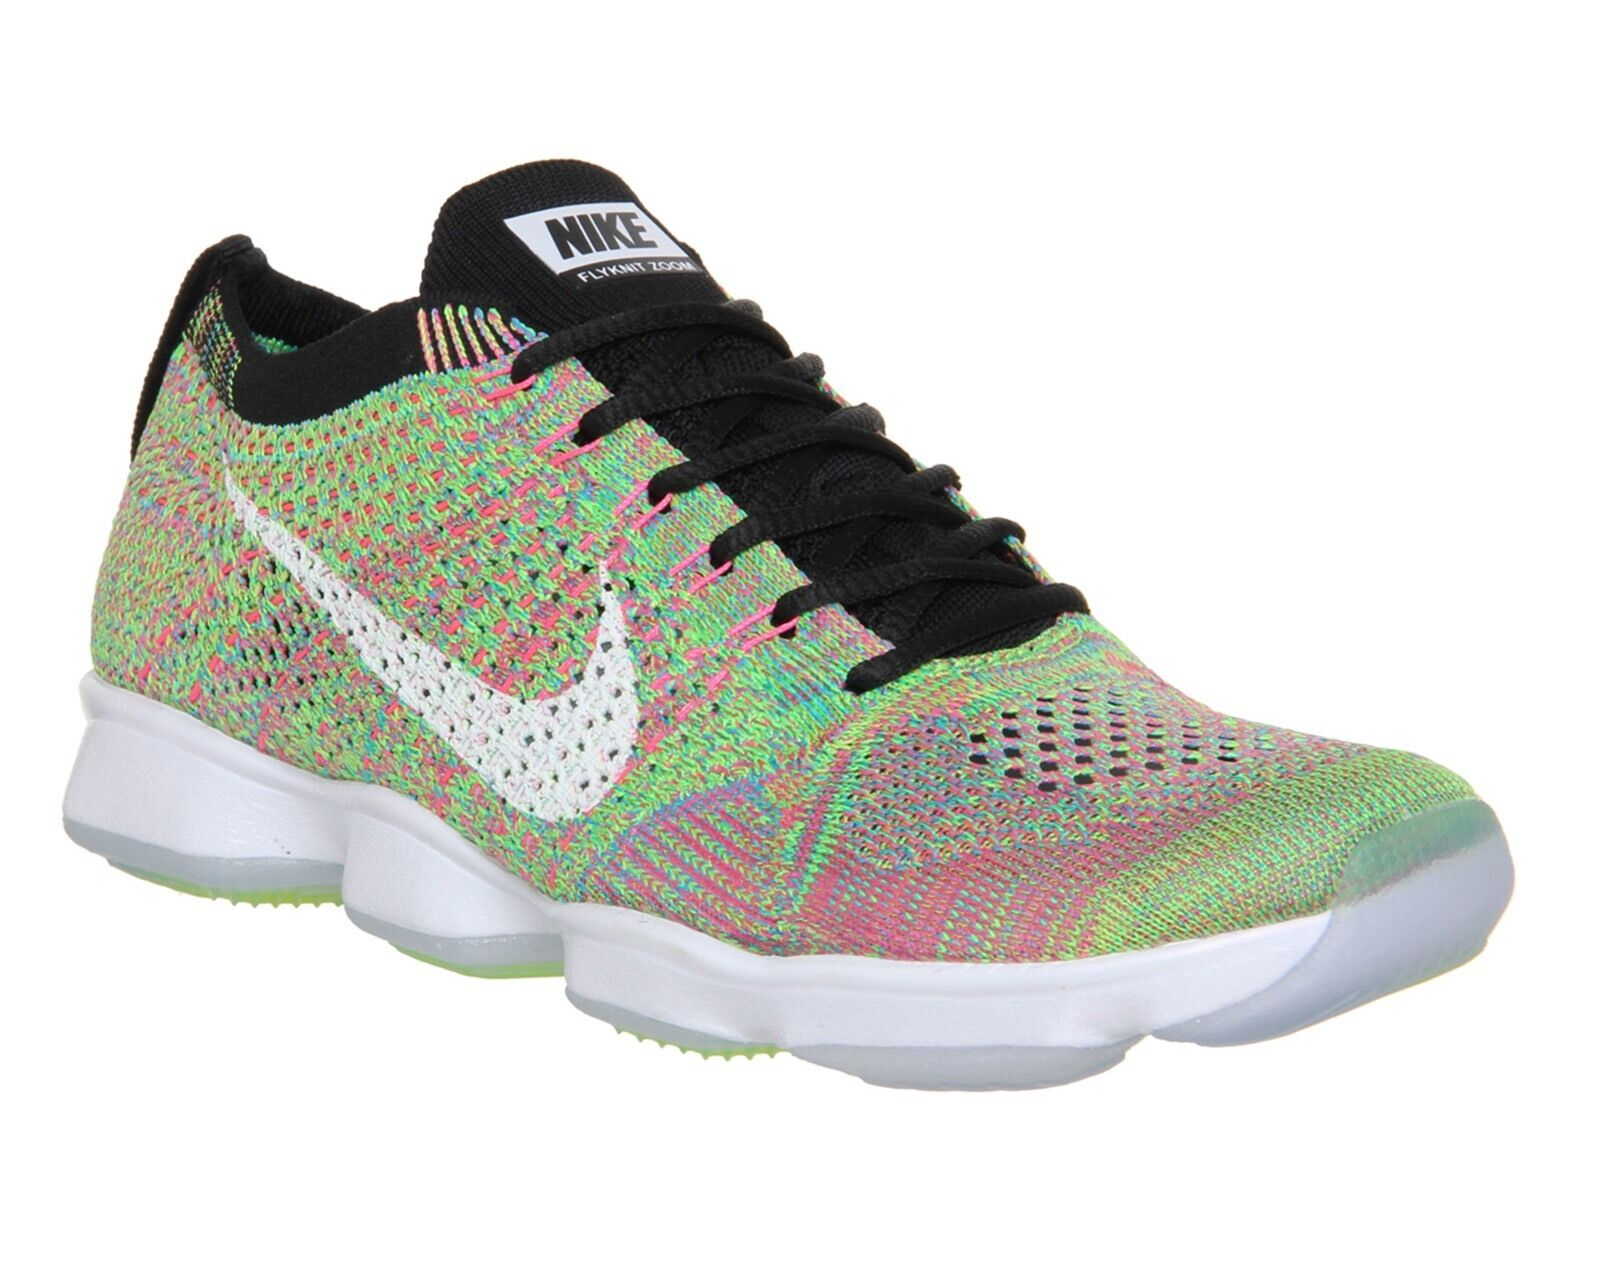 Femme NIKE FLYKNIT ZOOM AGILITY  Multi  Rainbow Colour way Taille7 New